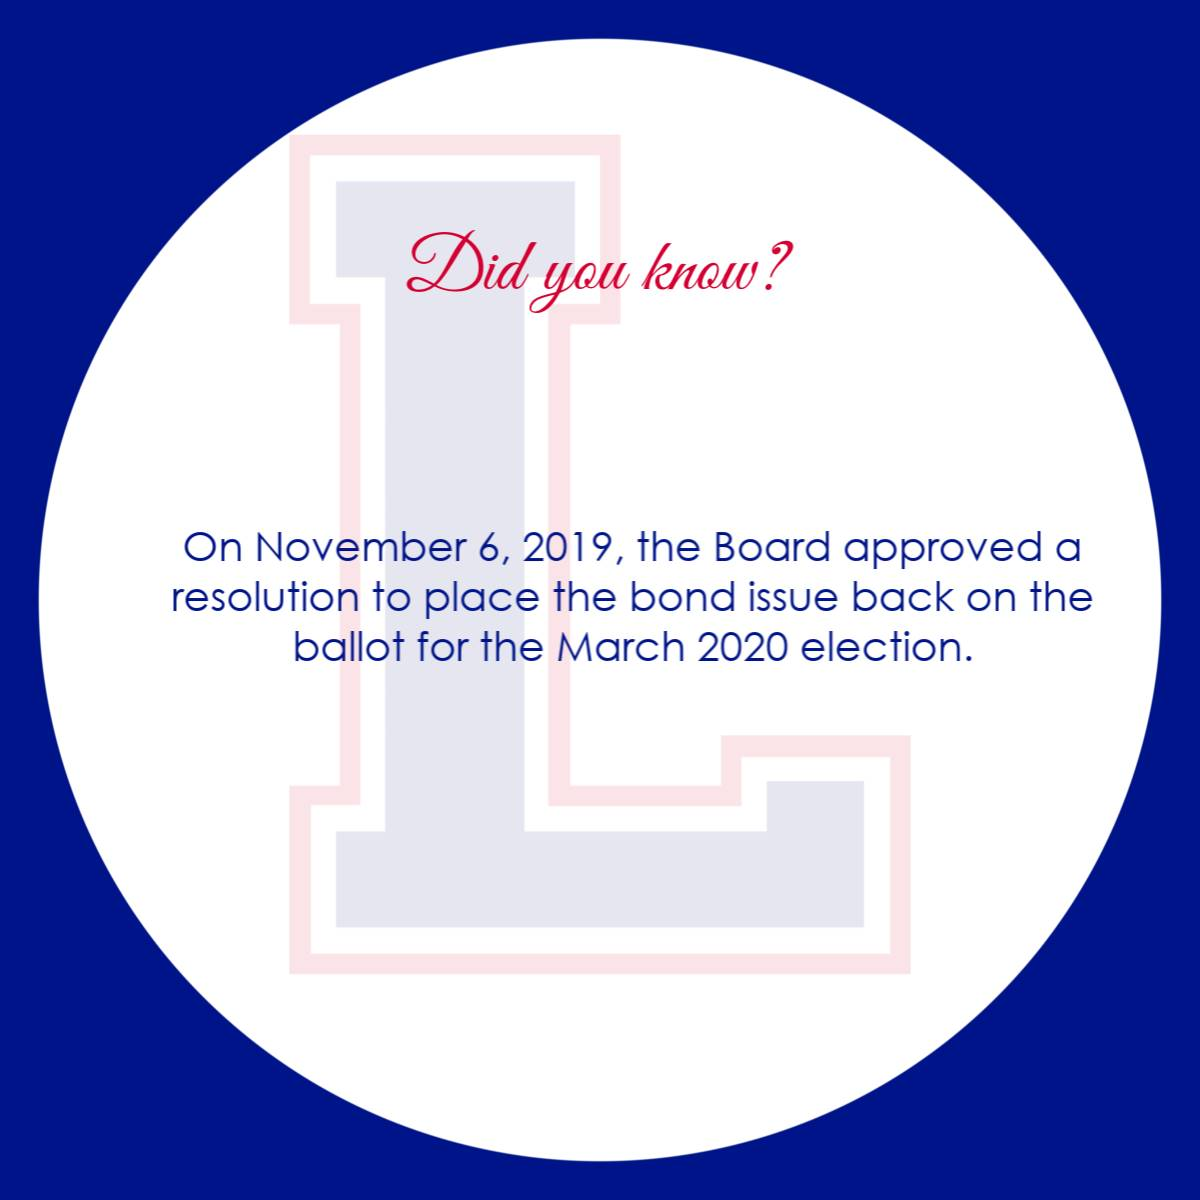 On November 6, 2019, the Board approved a resolution to place the bond issue back on the ballot f